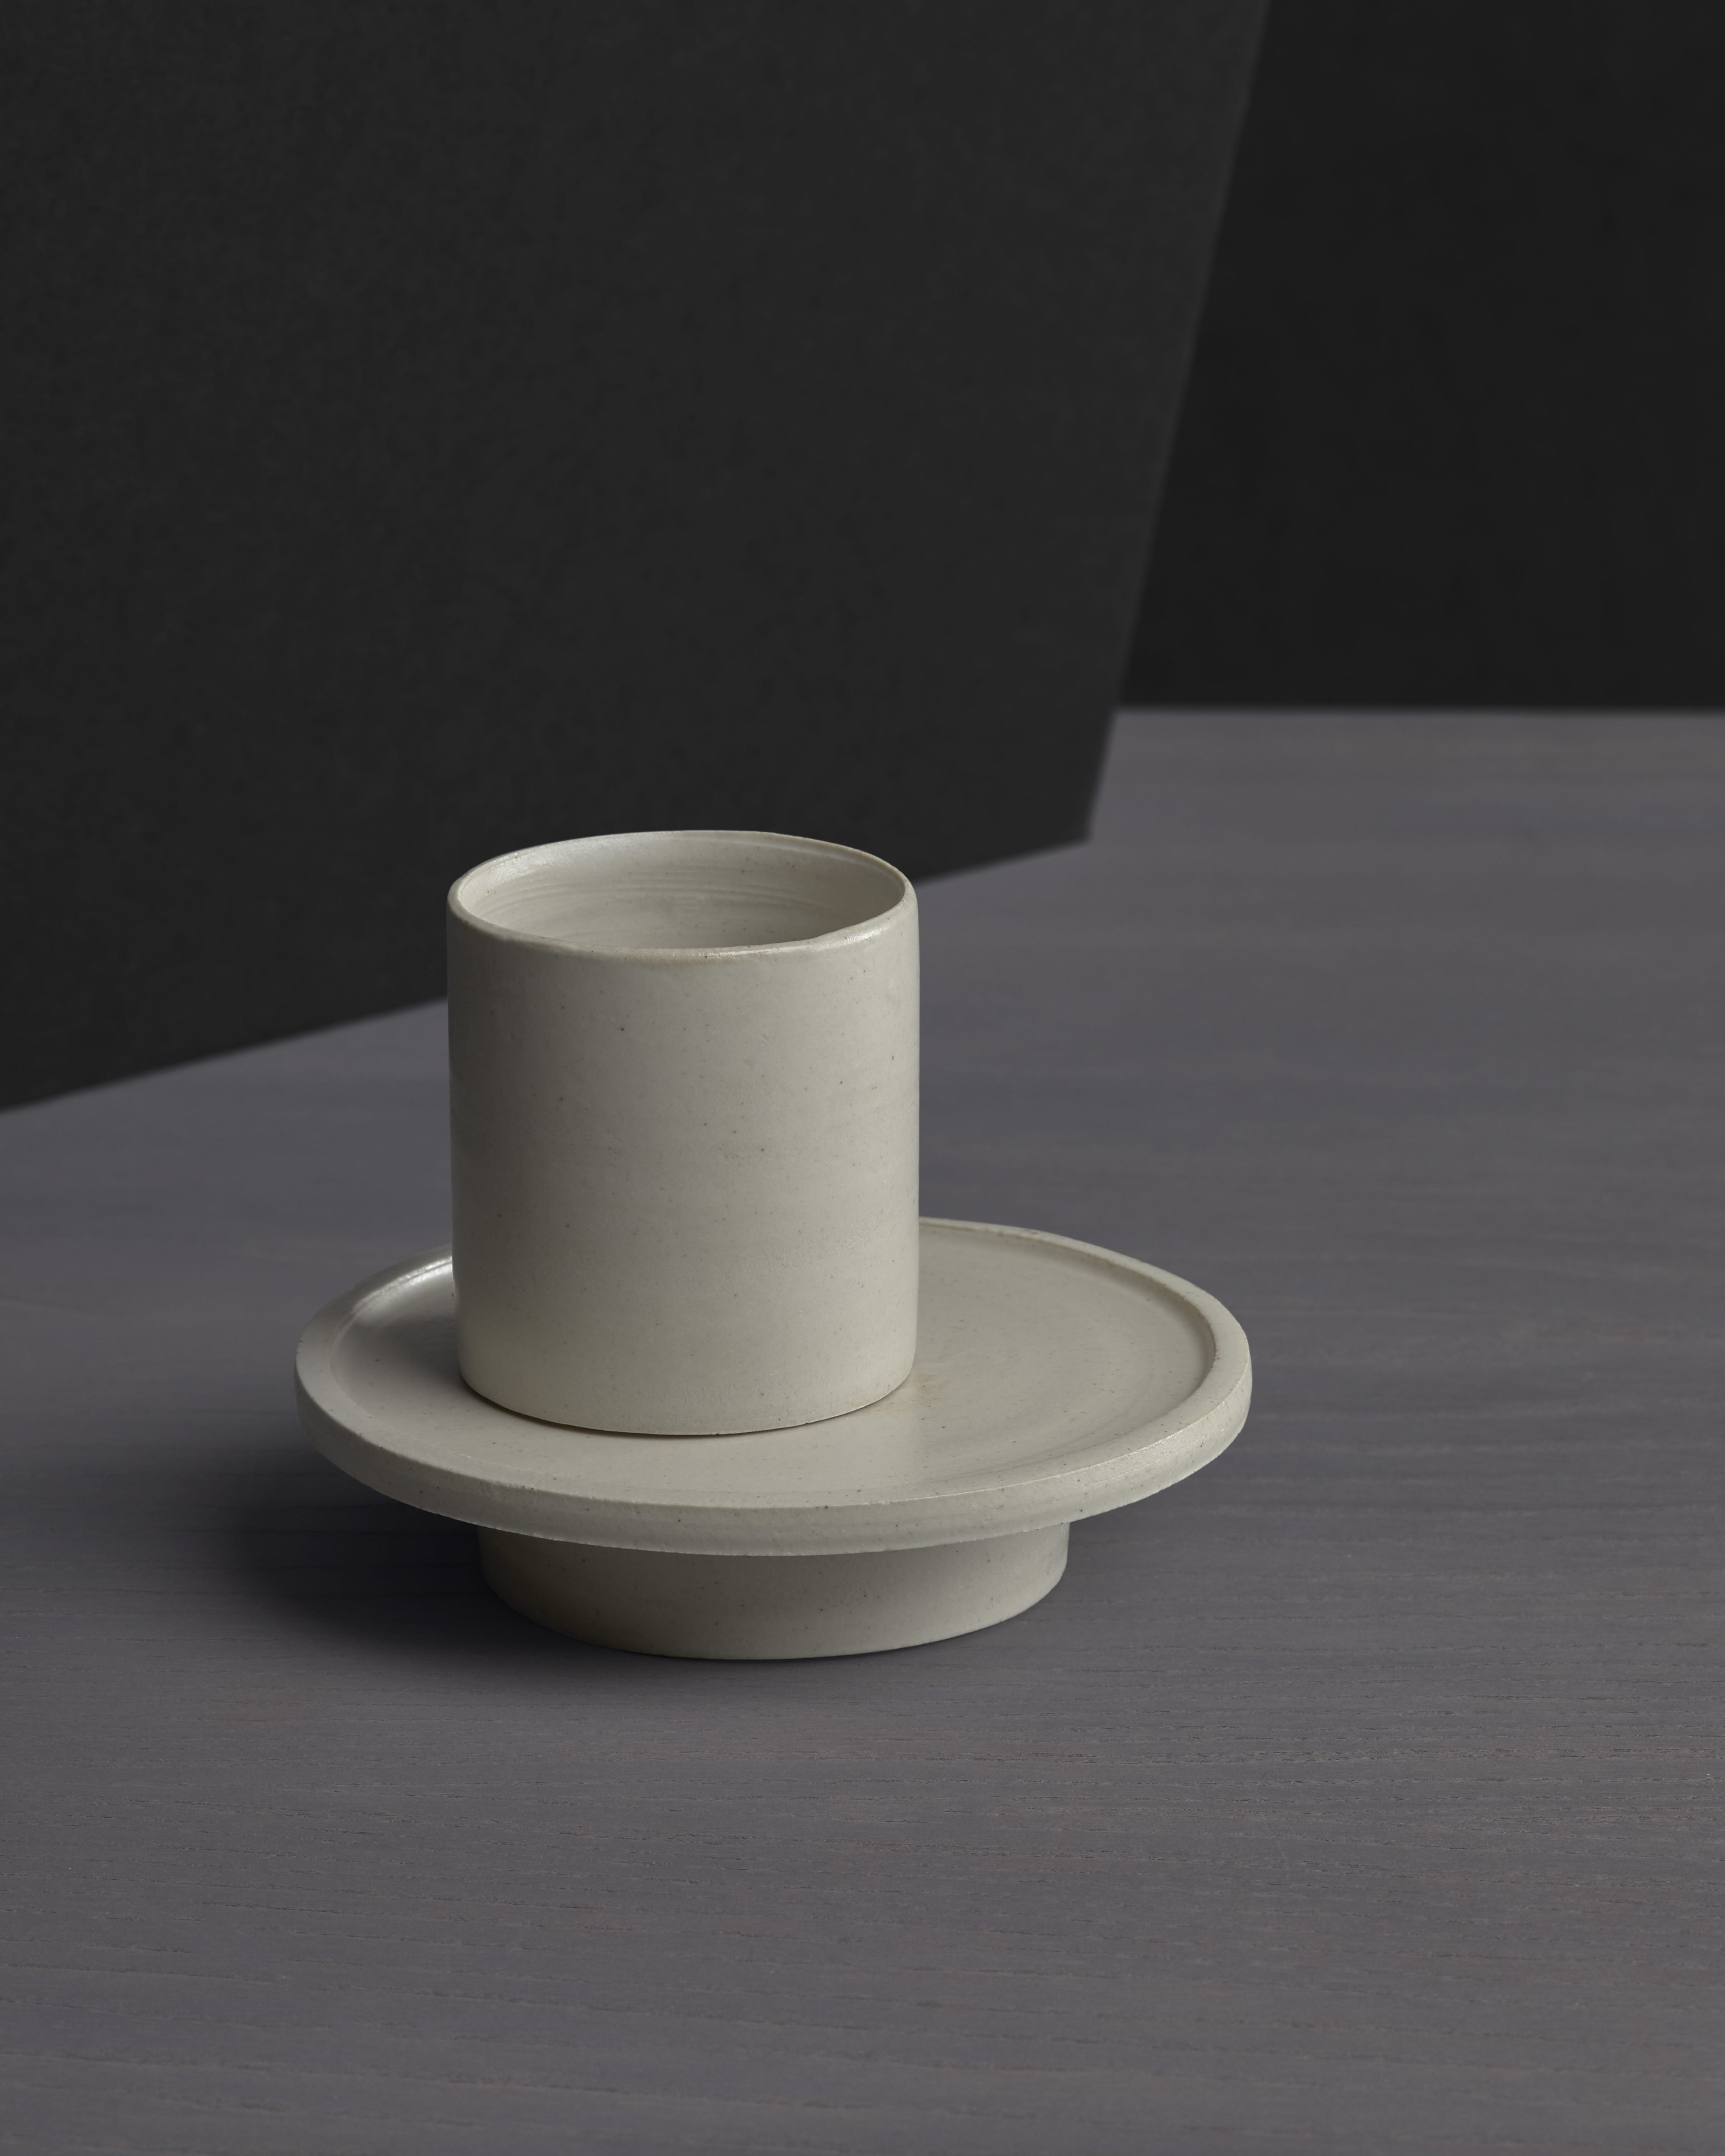 Rosa Coffee Cup, Society Limonta